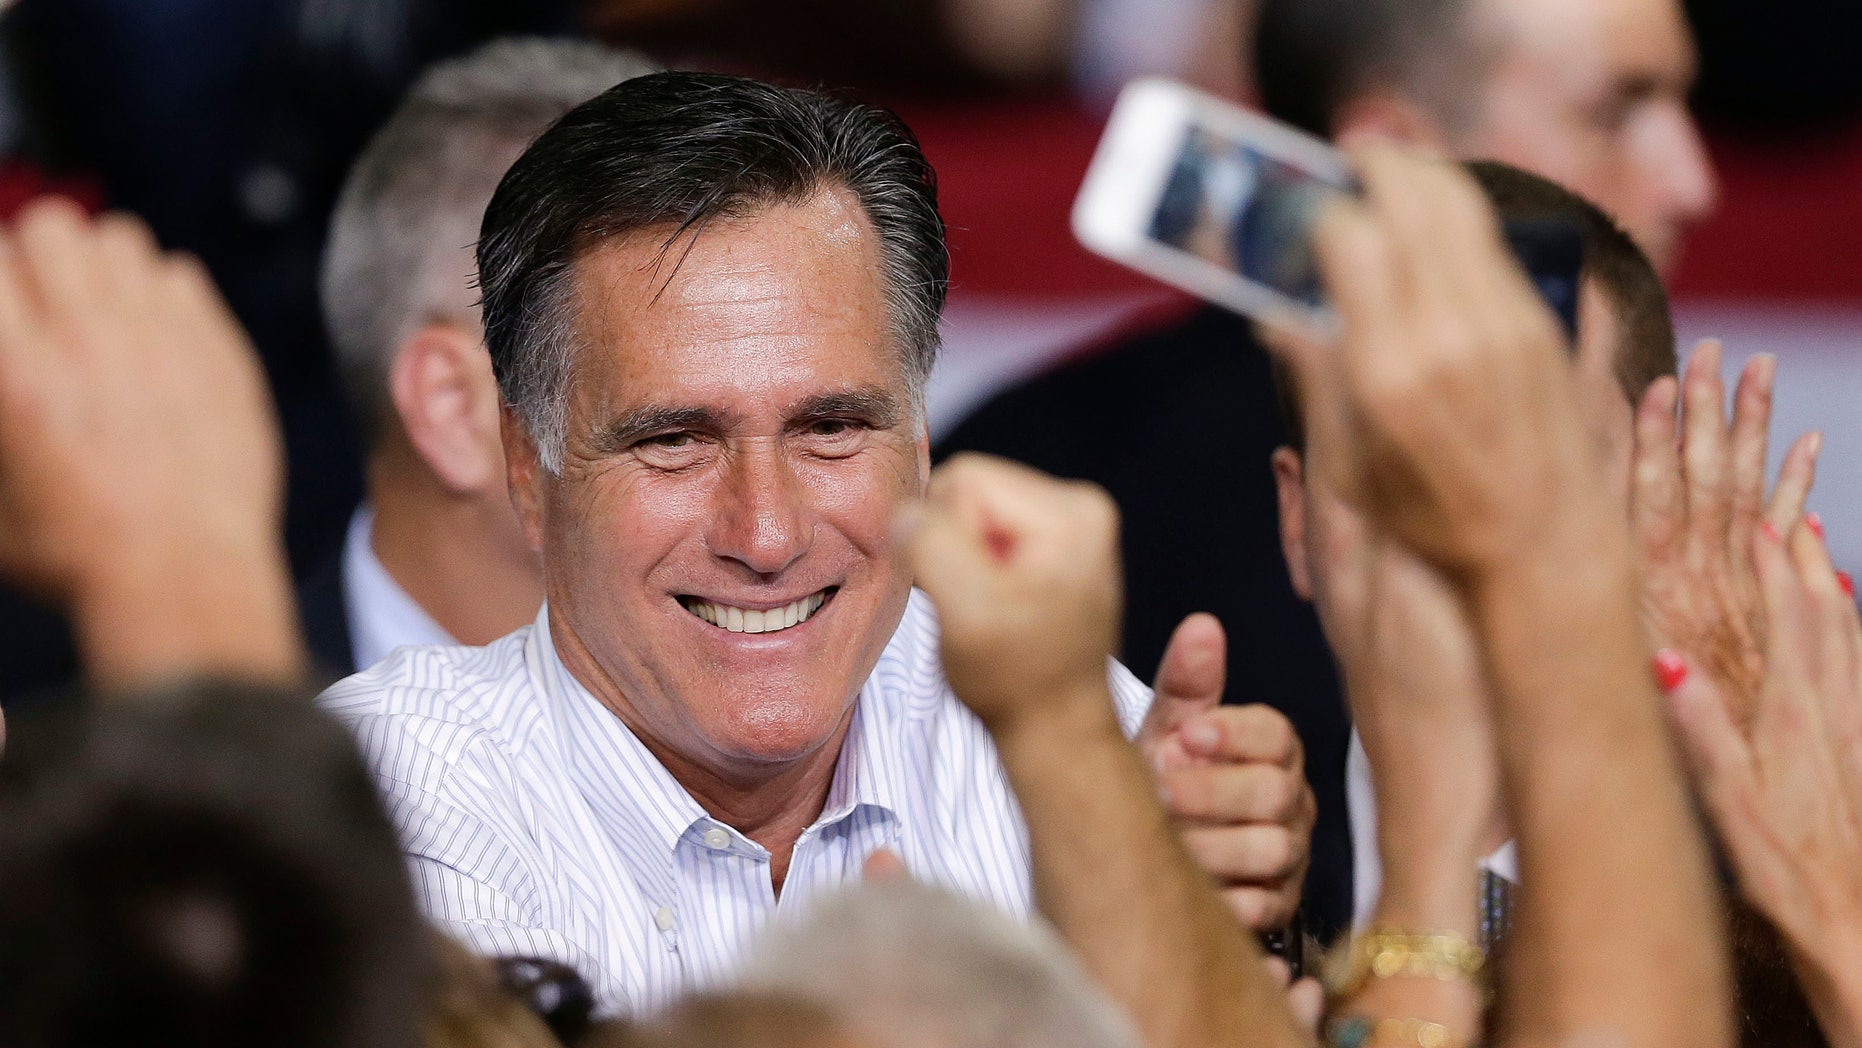 FILE: Sept. 21, 2012: Mitt Romney greets supporters after speaking at a rally Friday  in Las Vegas.